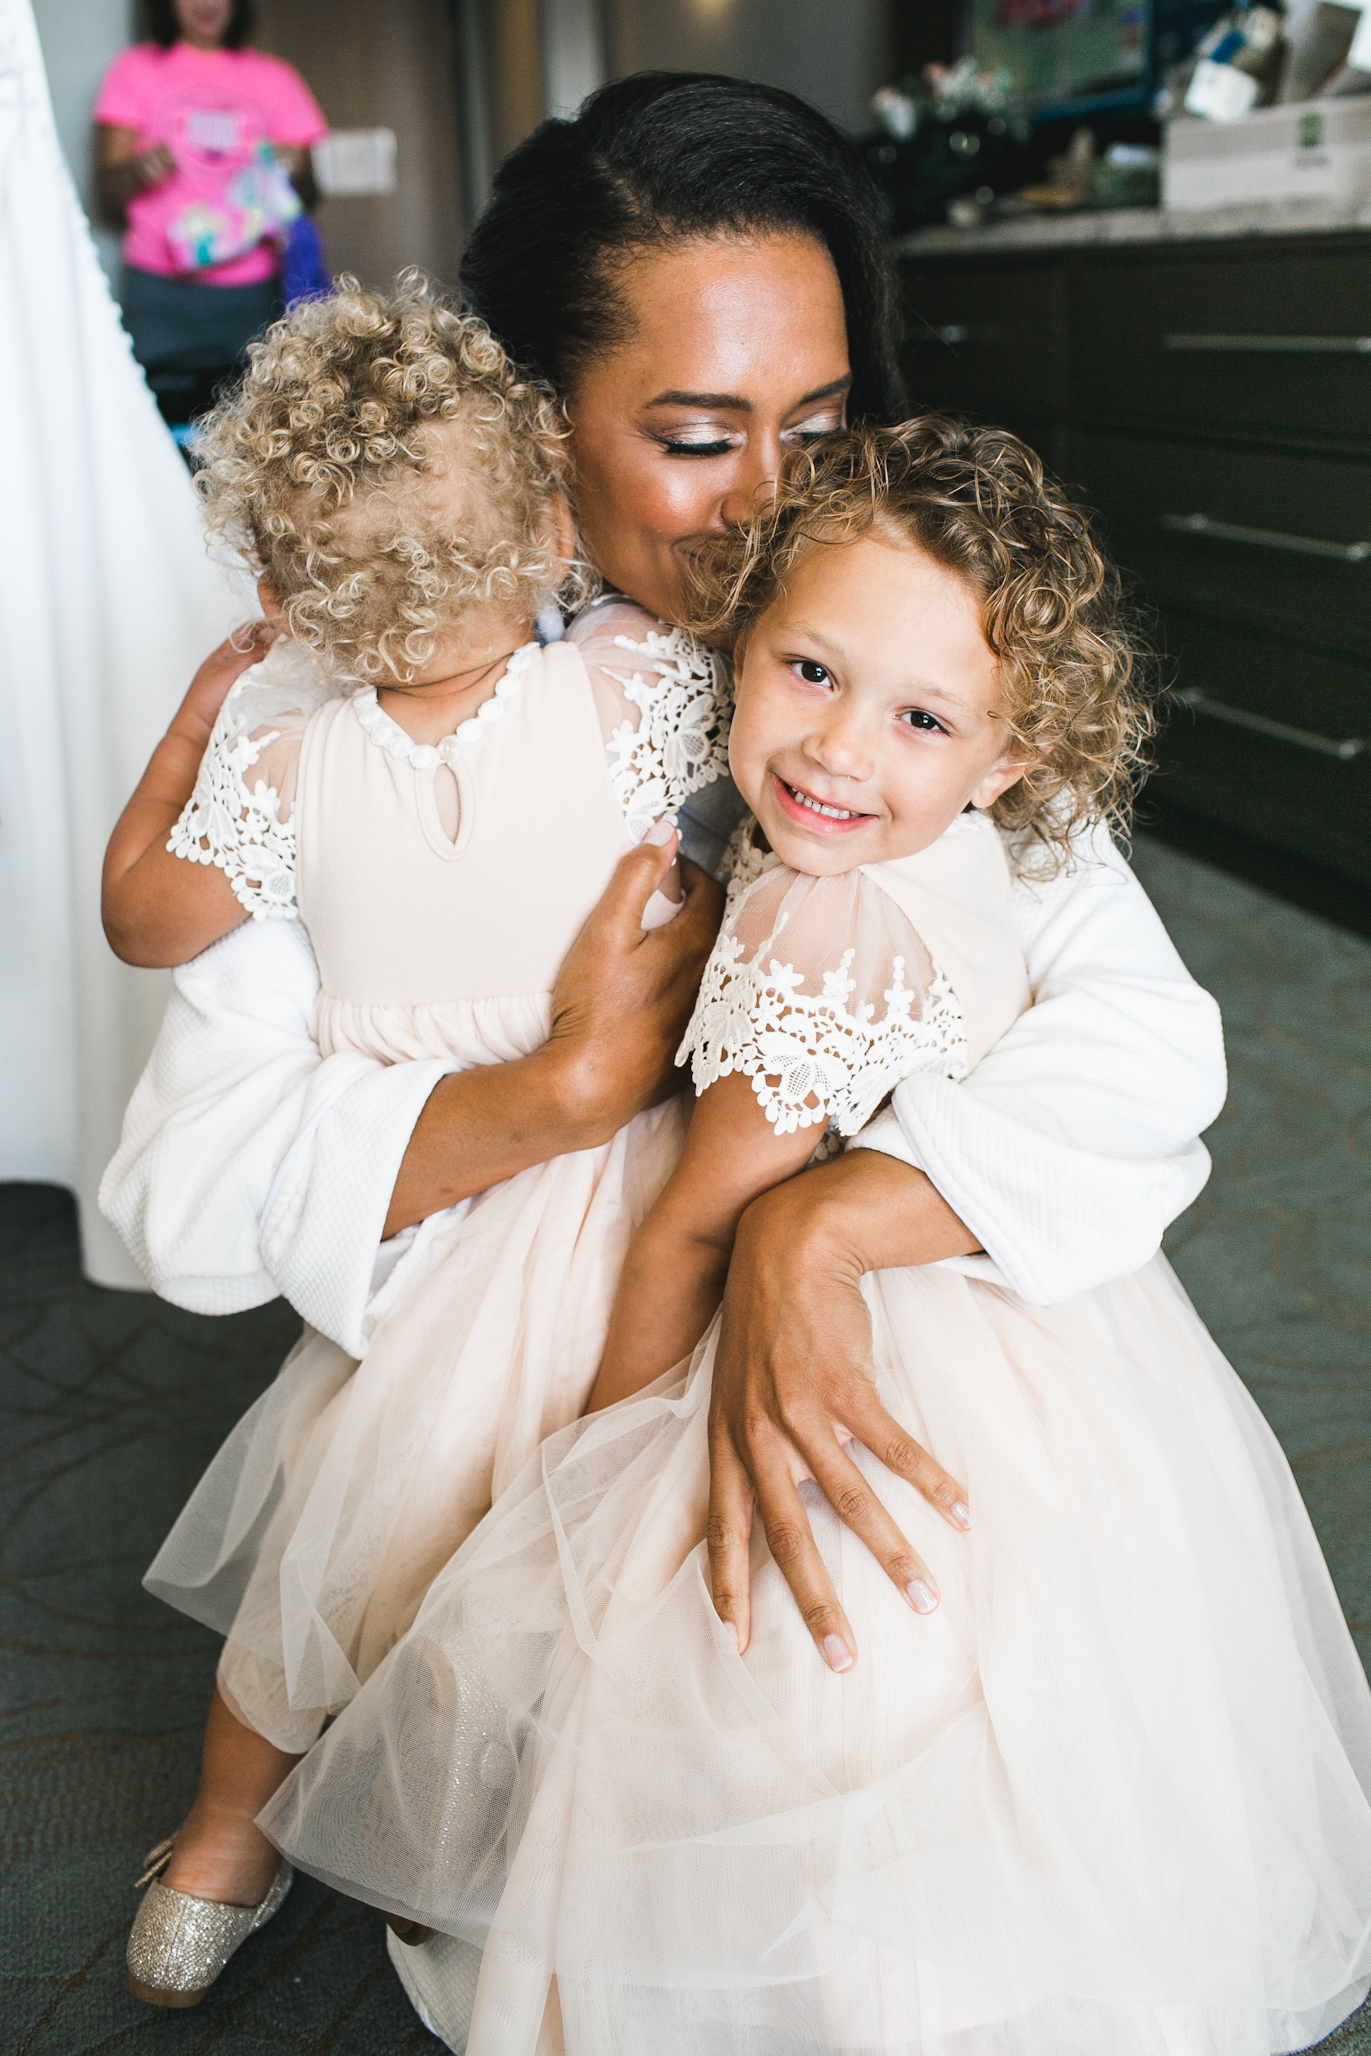 How cute are her darling nieces! Their shoes! Their dress! I can't.